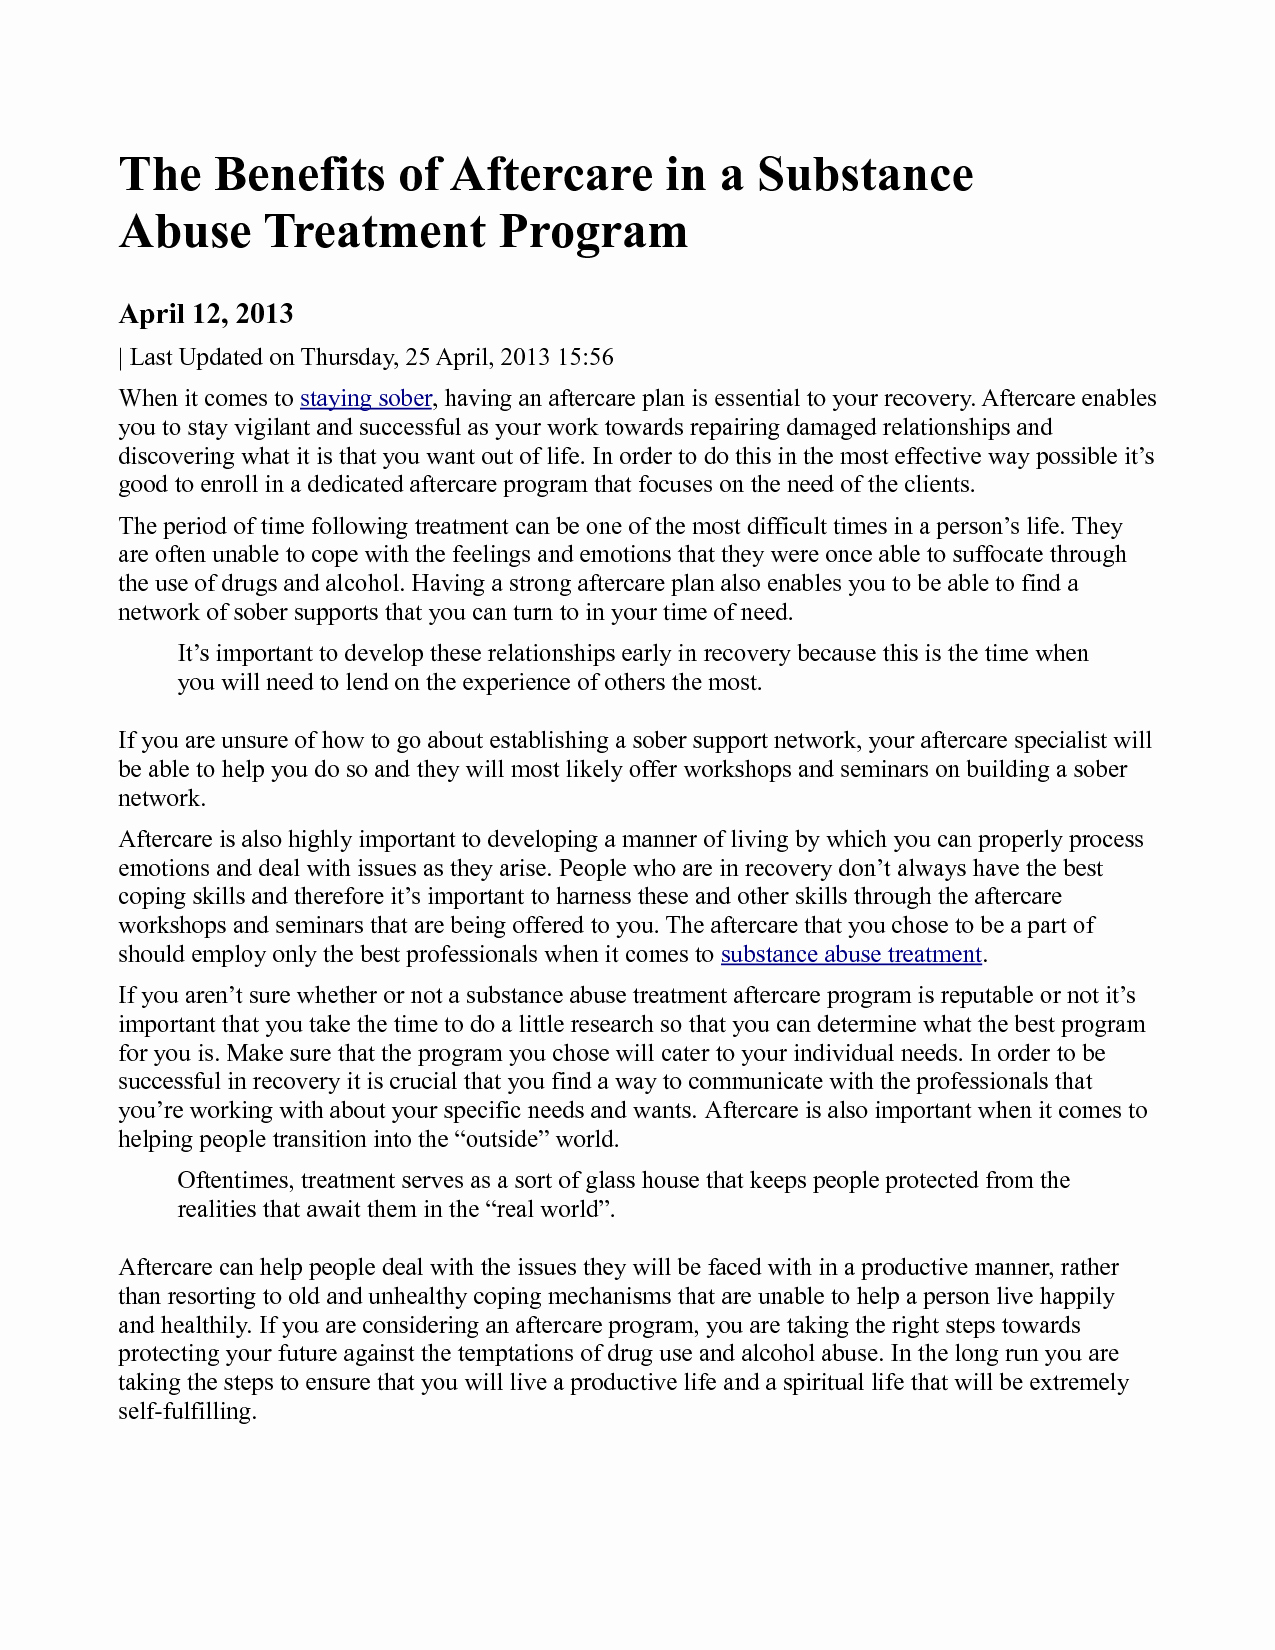 Addiction Recovery Plan Template Unique 18 Best Of Treatment Plan Substance Abuse